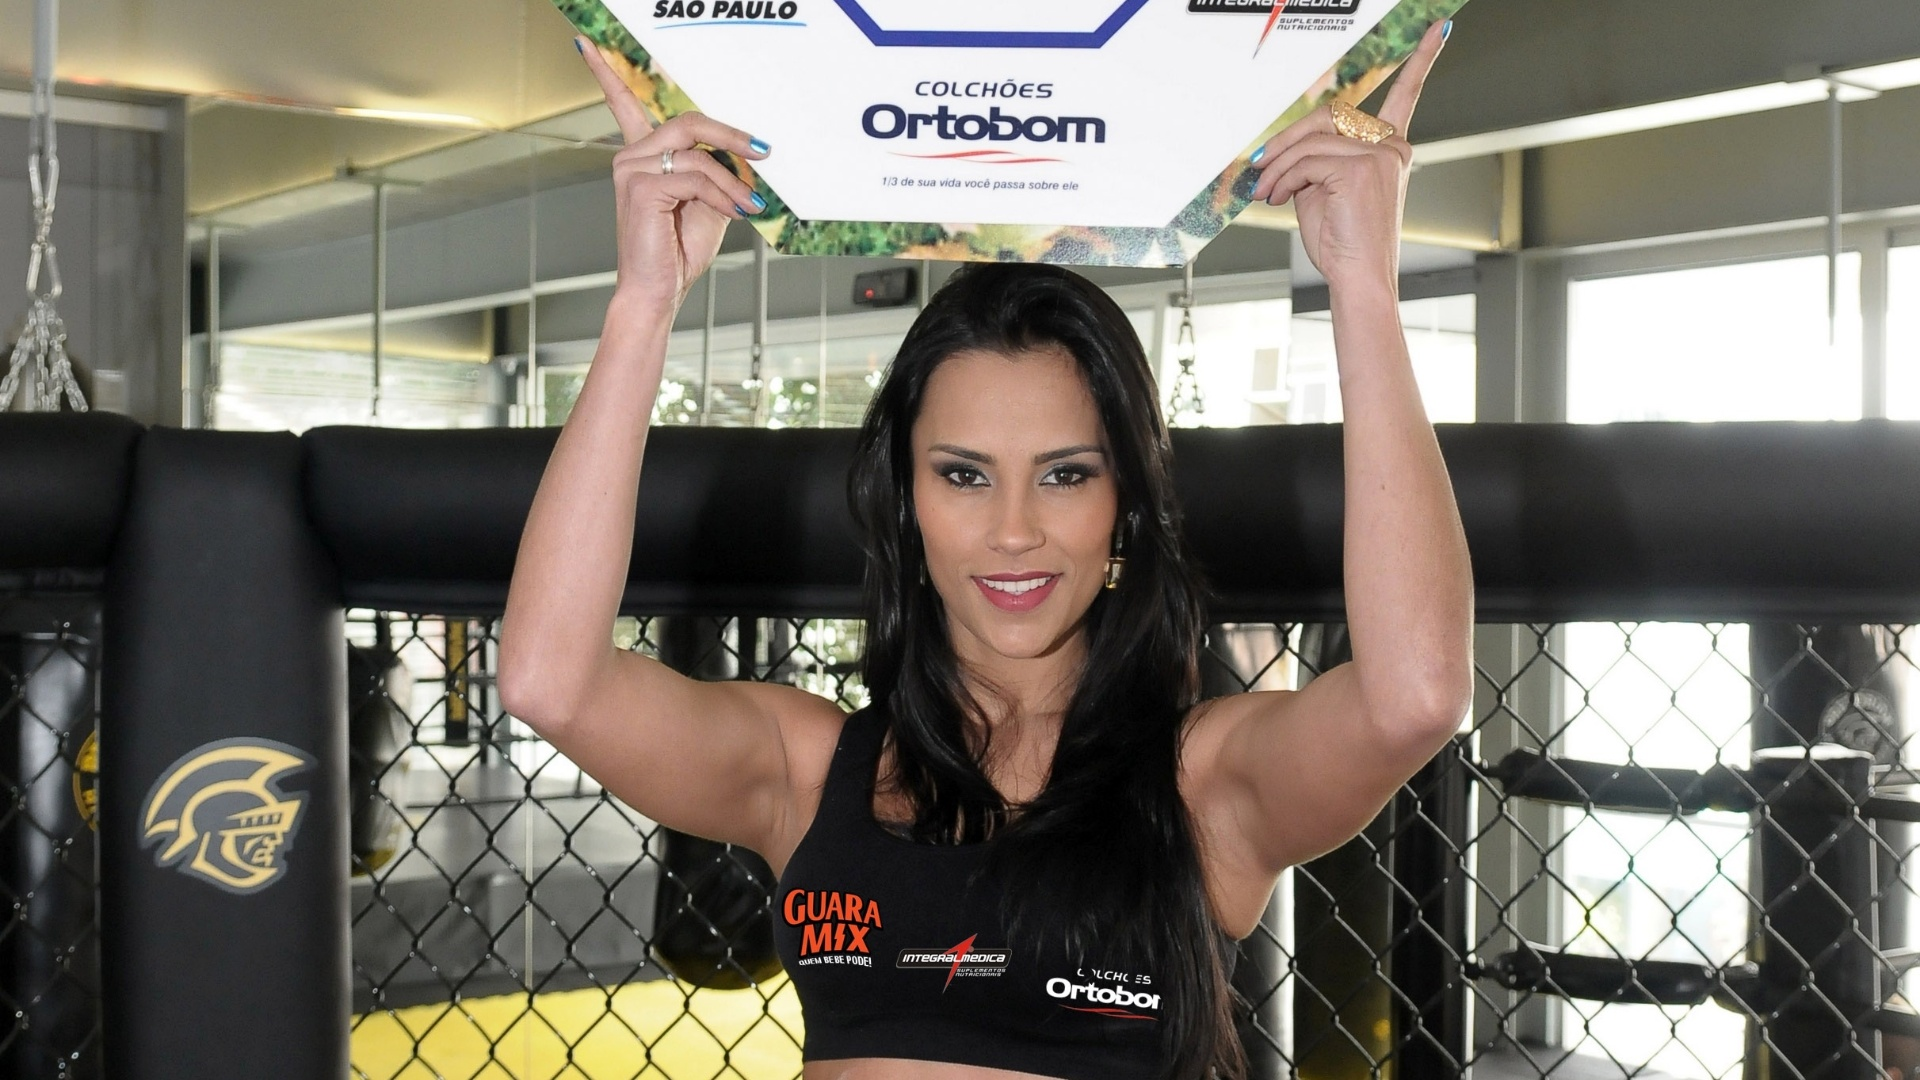 Ex-BBB Kelly Medeiros será Ring Girl no Jungle Fight 42, que ocorrerá dia 18 de agosto no ginásio do Estádio do Pacaembu